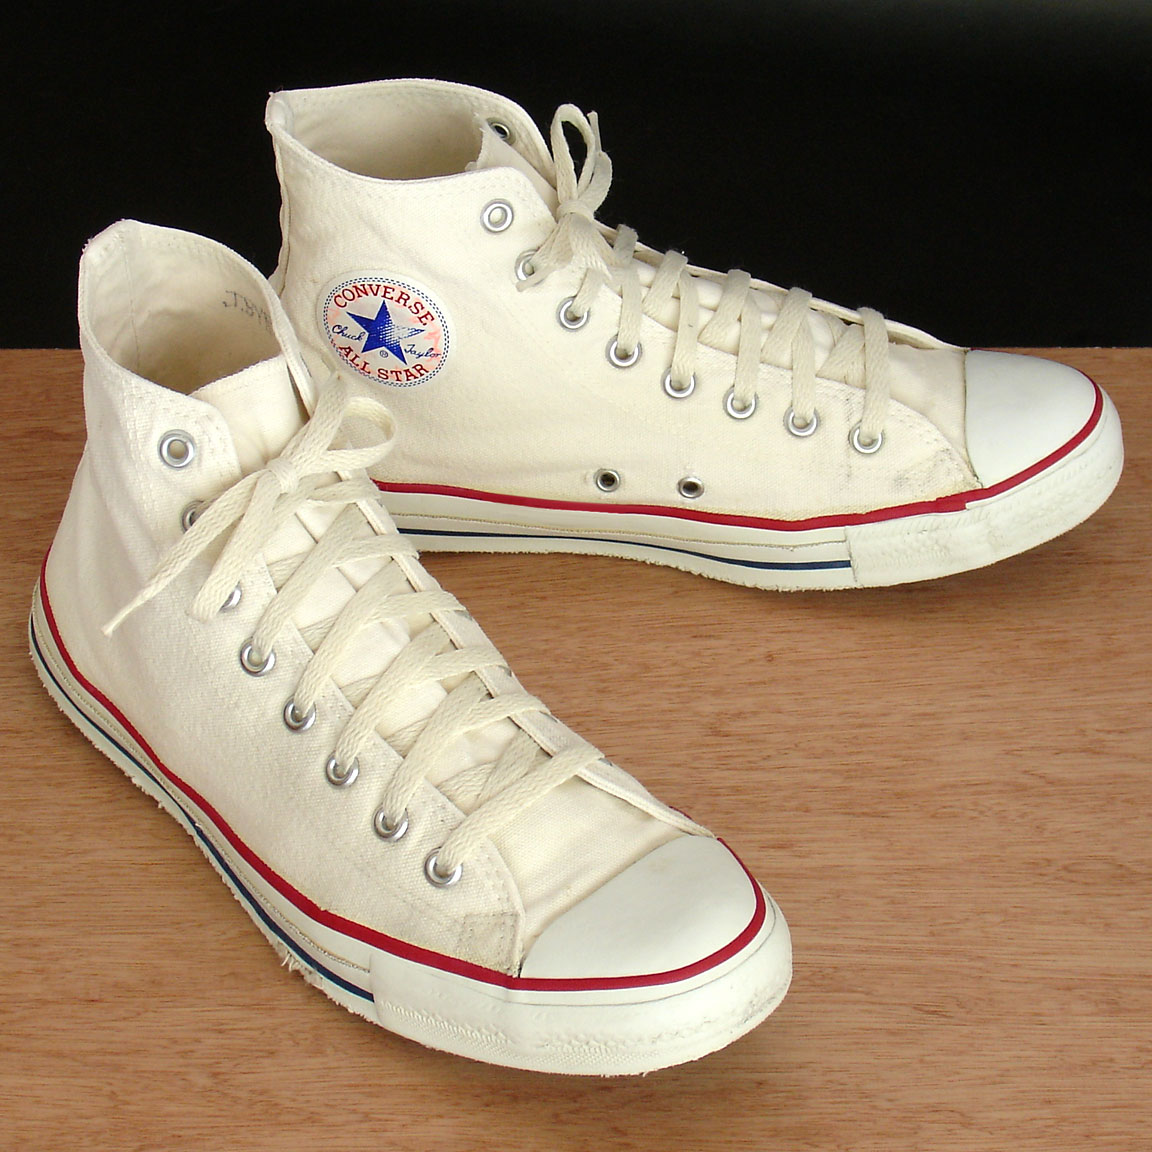 American All For Vintage Chuck Star Taylors Converse Made Sale QdthrCs